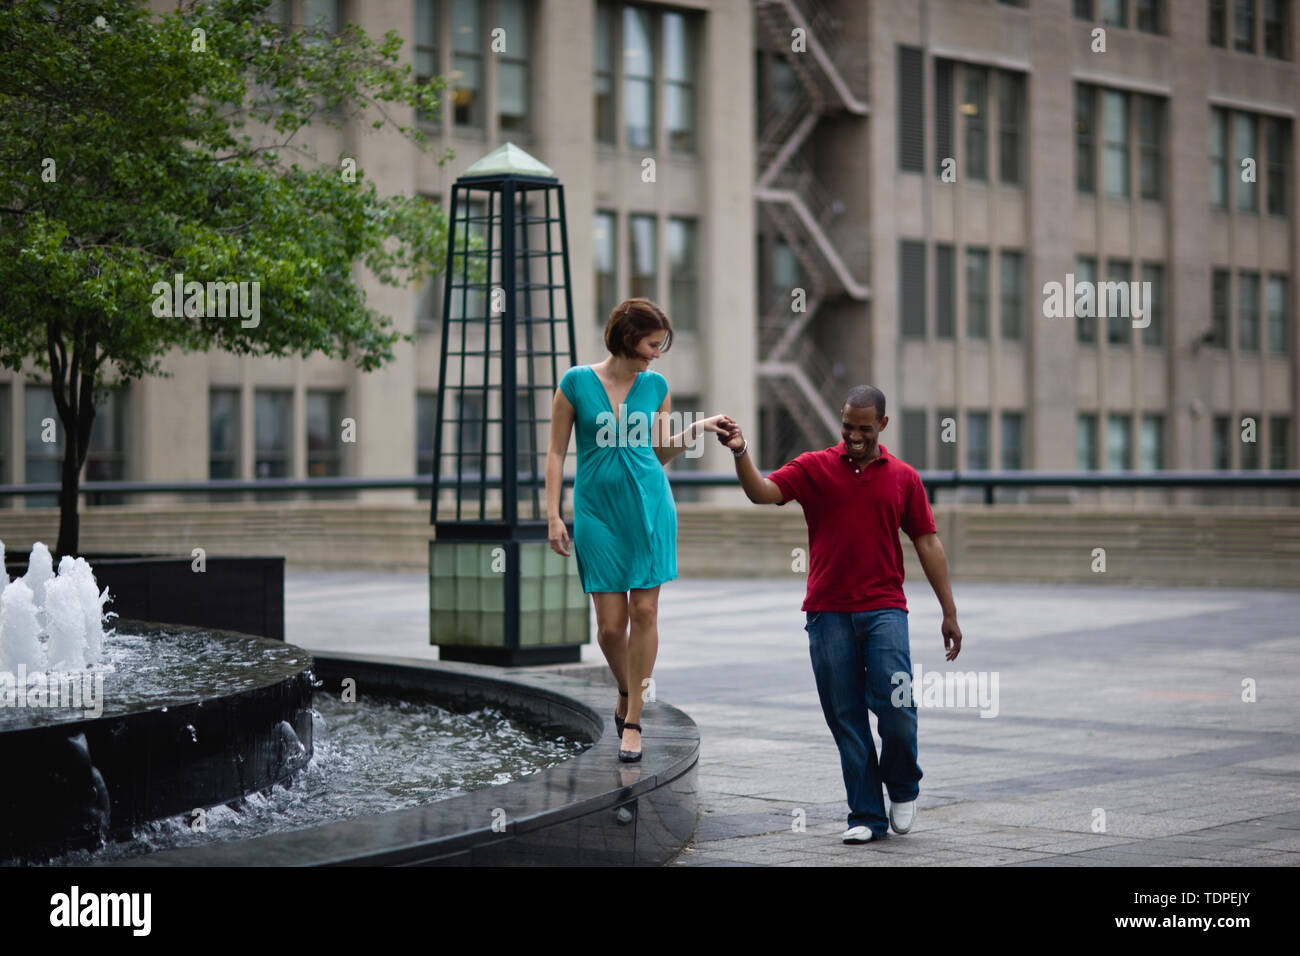 Happy young couple holding hands while walking next to a fountain in the city. - Stock Image